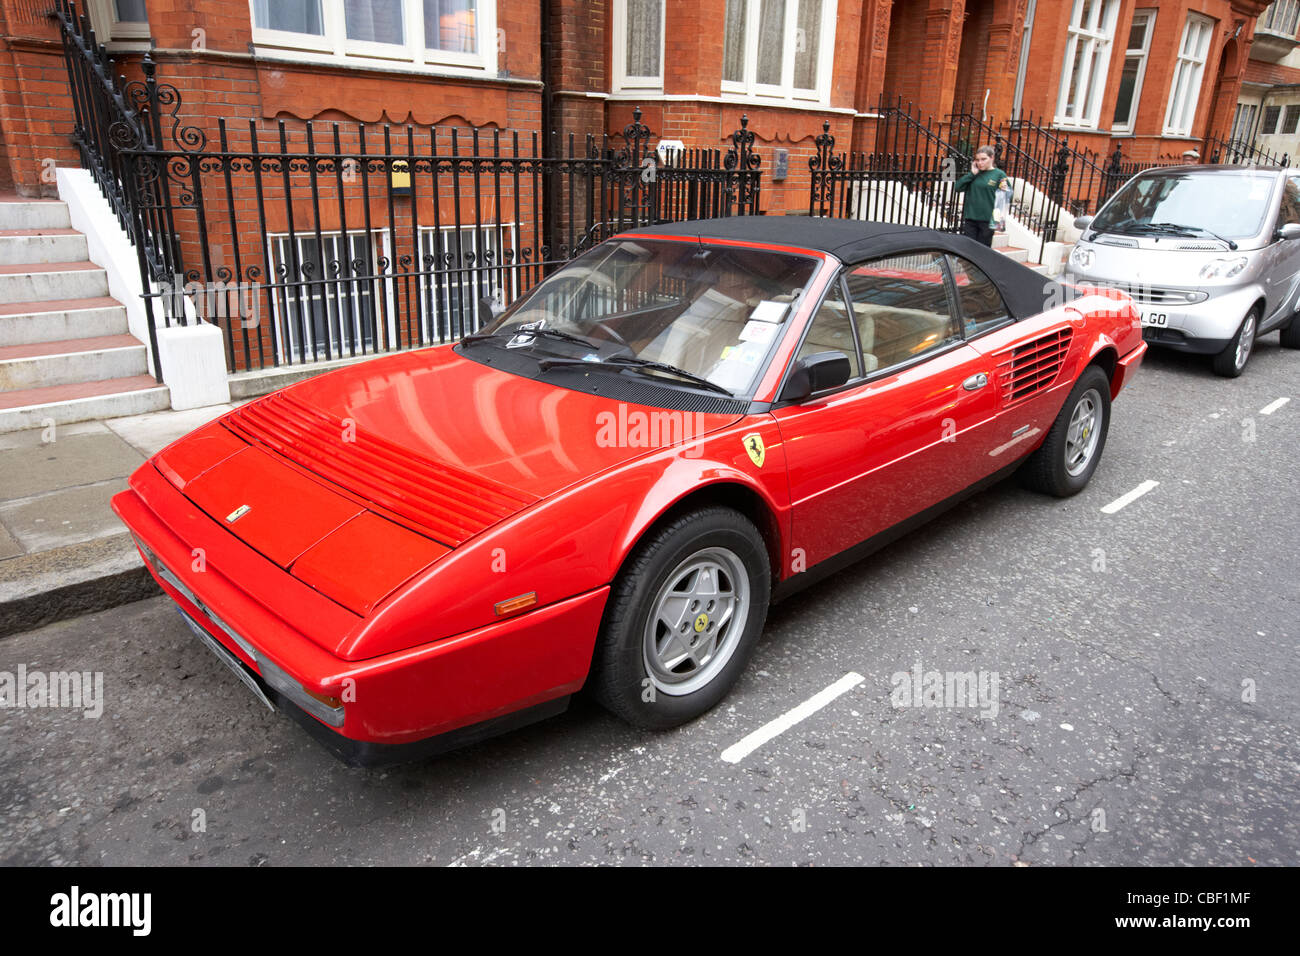 ferrari convertible parked in a kensington and chelsea resident parking bay london england uk united kingdom - Stock Image